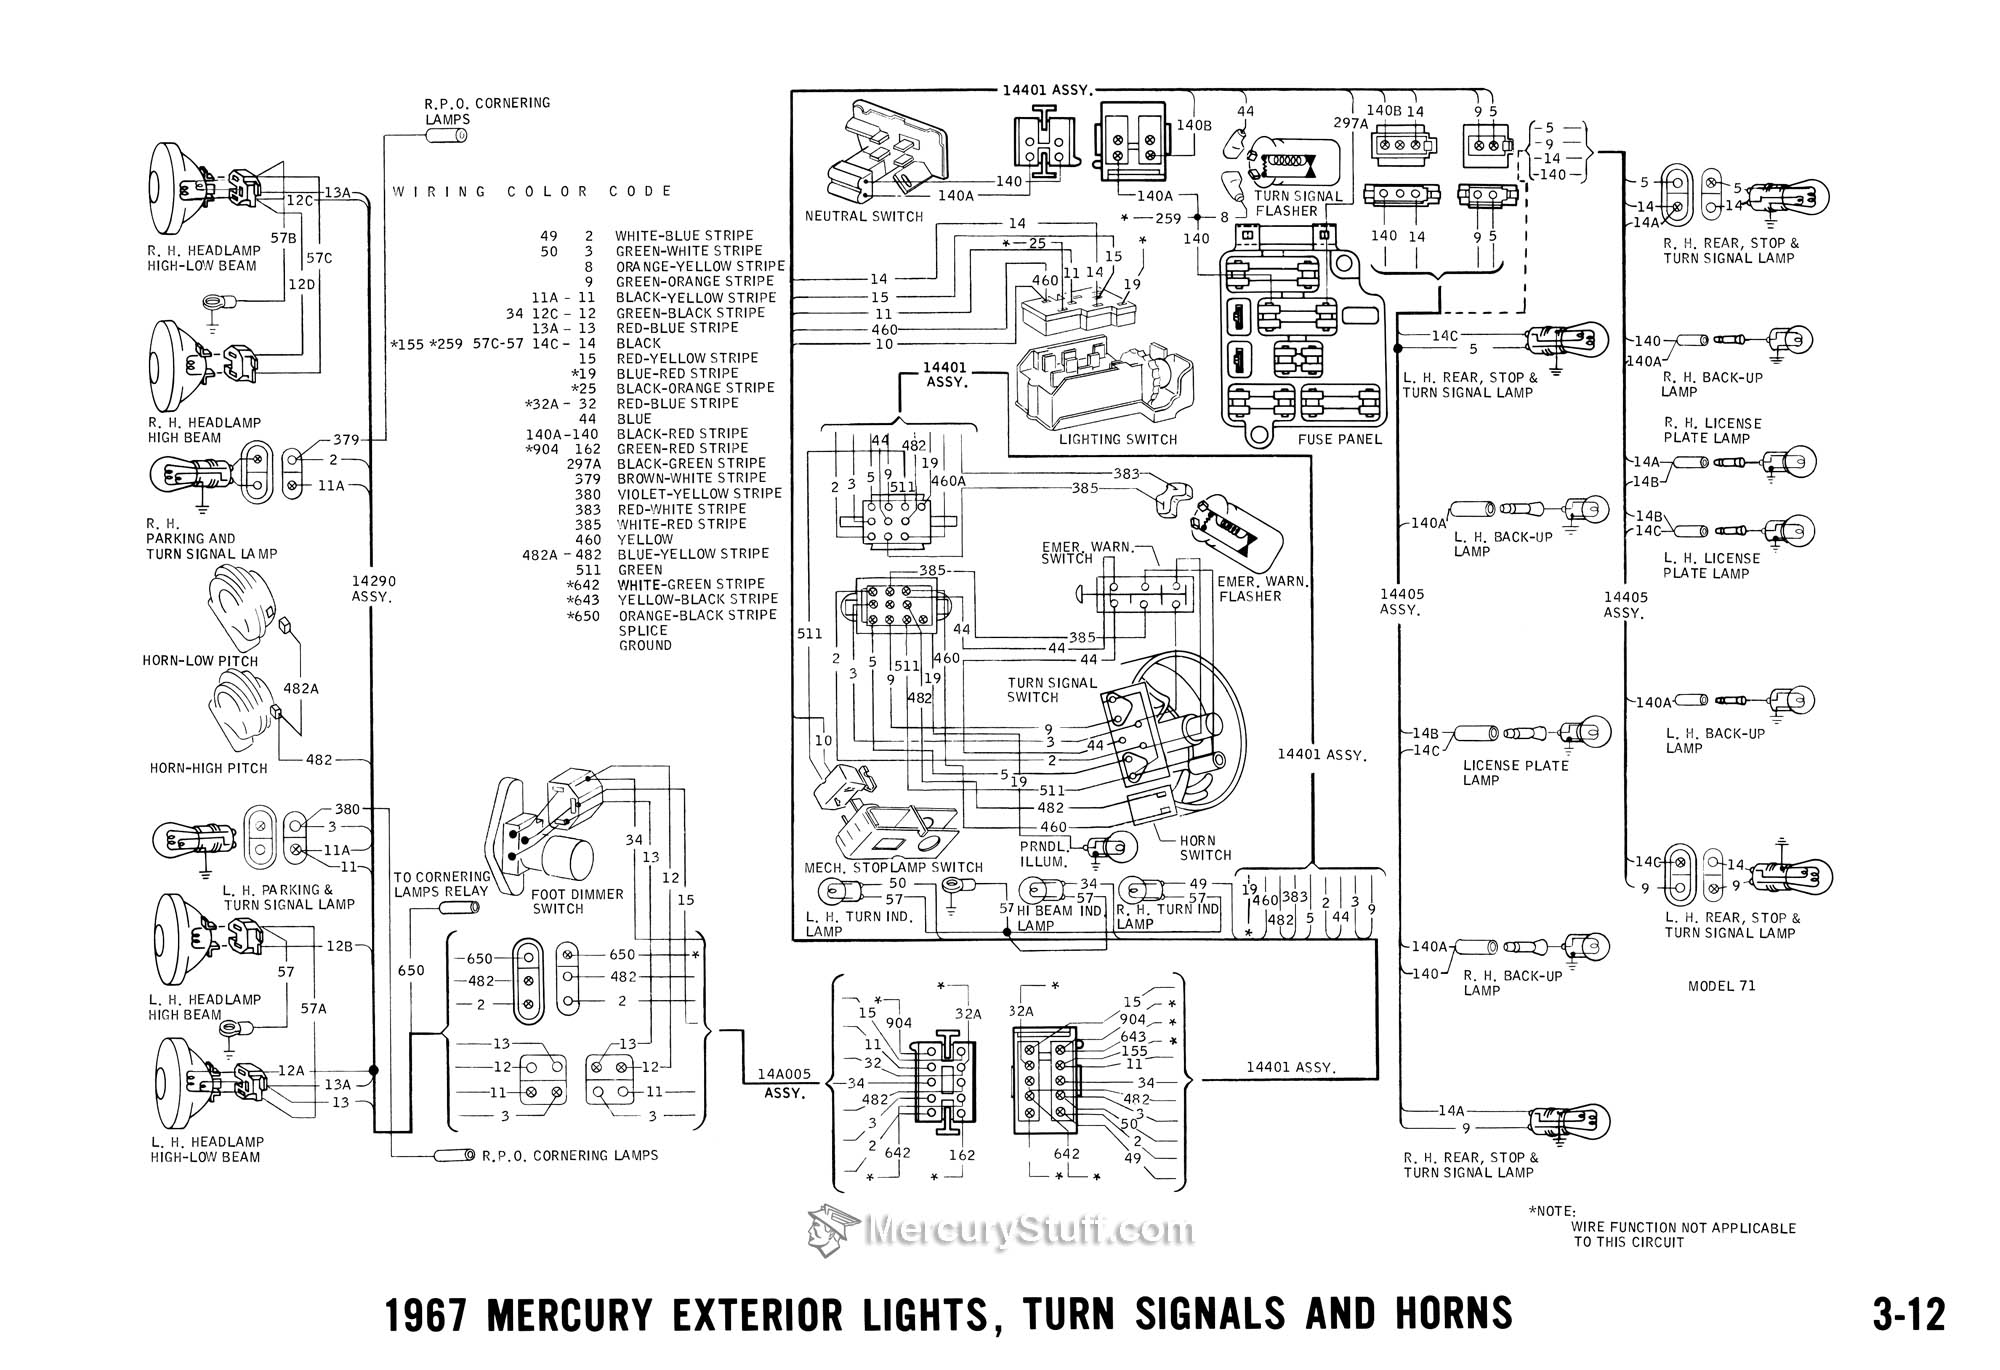 1967 mercury exterior lights turn signals horns wiring diagram 2006 mercury grand marquis the wiring diagram mercury 14 pin wiring harness diagram at n-0.co